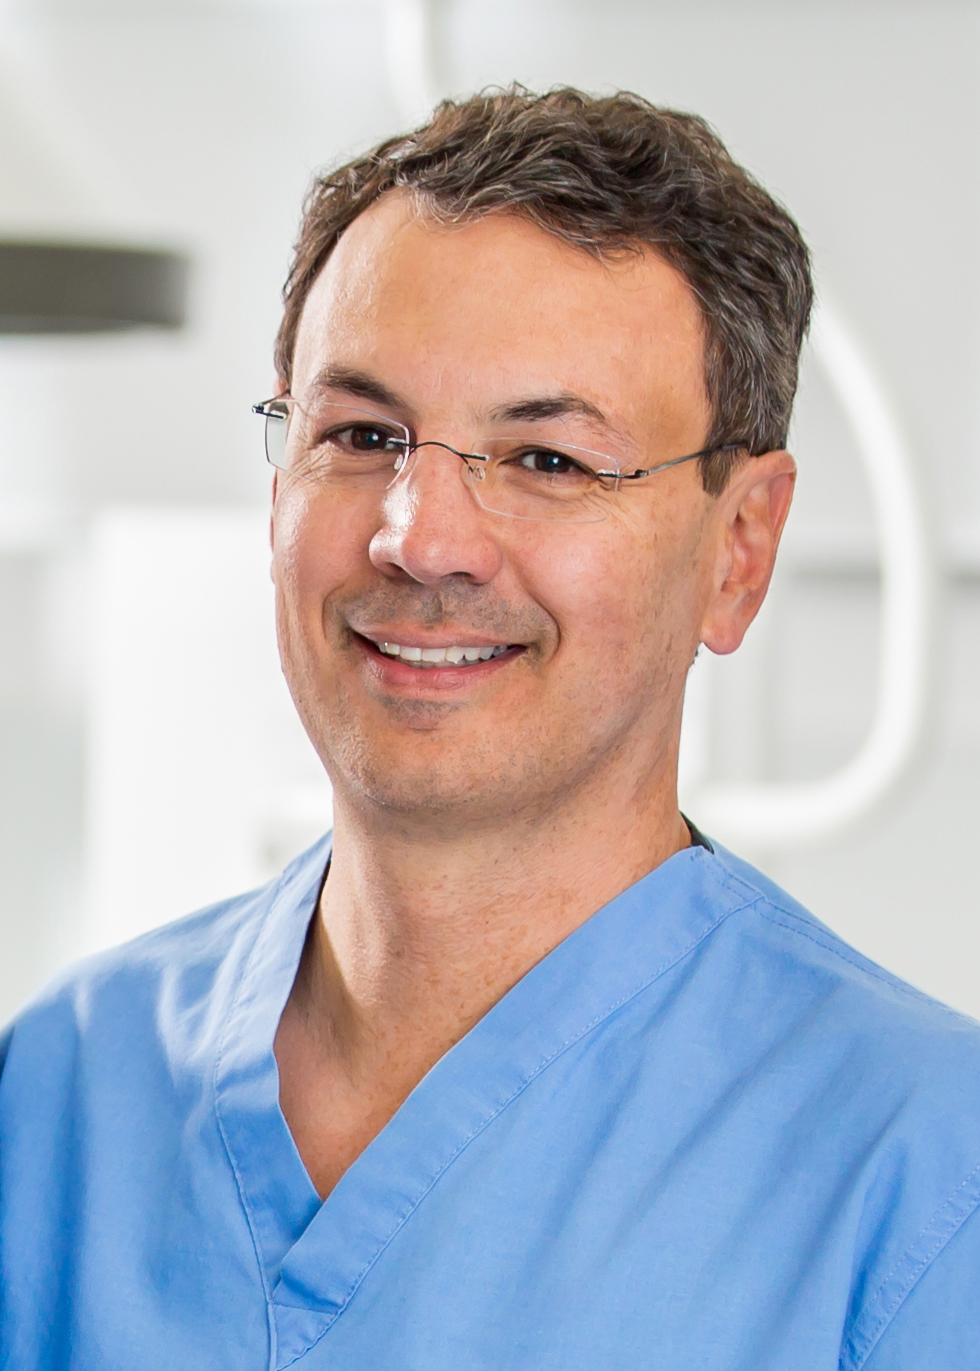 Juan Uribe, MD, Chief of the division of spinal disorders at Barrow Neurological Institute